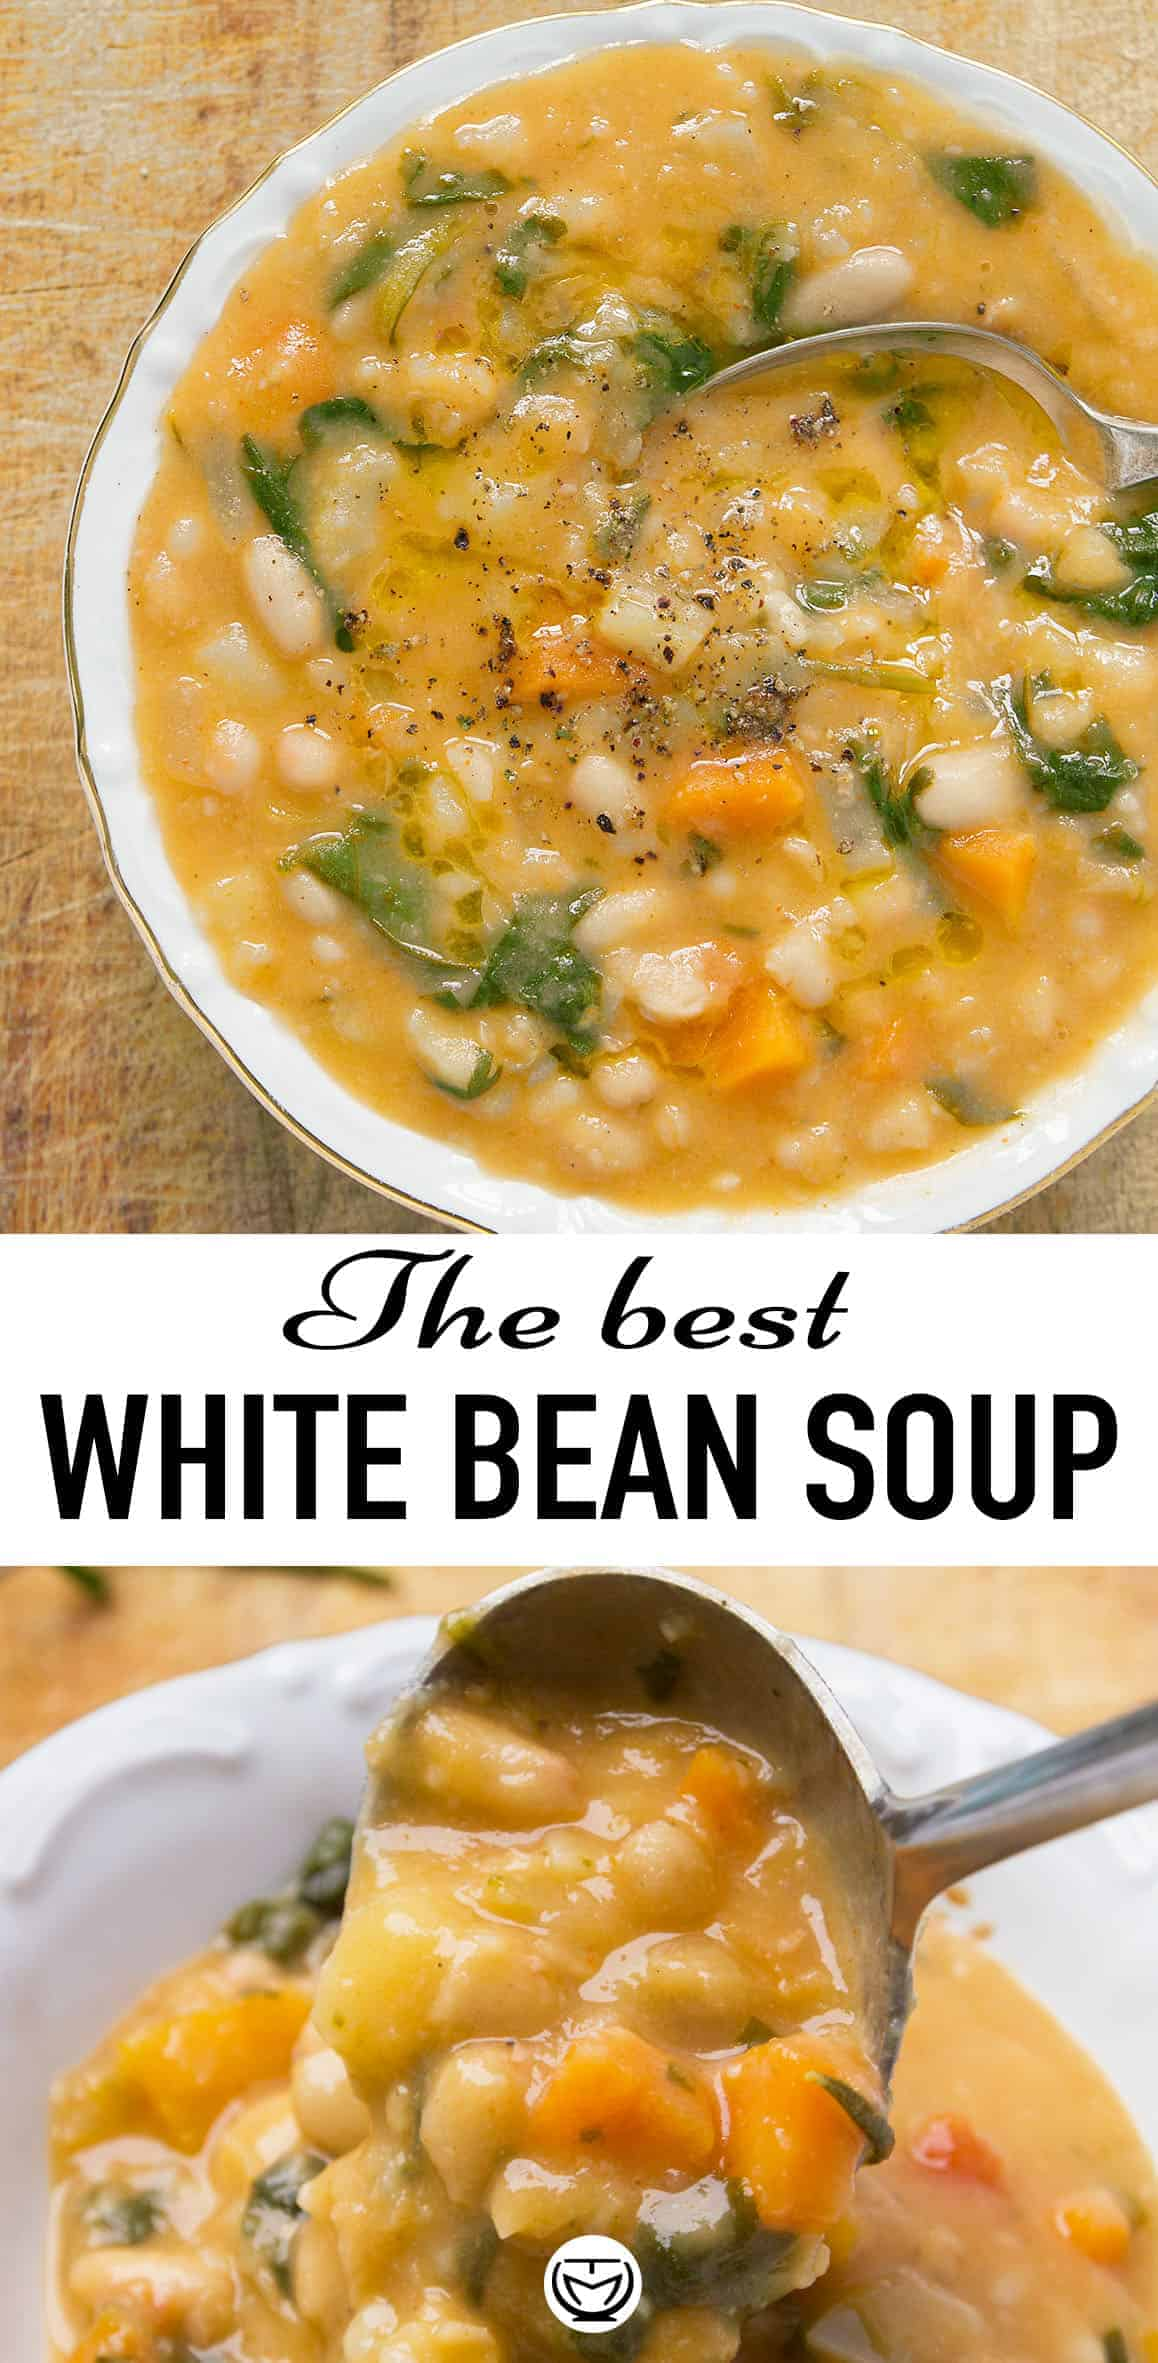 This delicious, creamy and vegan white bean soup tastes and smells amazing, it's budget-friendly and ready in 25 minutes! #veganrecipes #souprecipes #cannellinibeanrecipes #healthydinnerrecipes #cheapmeals